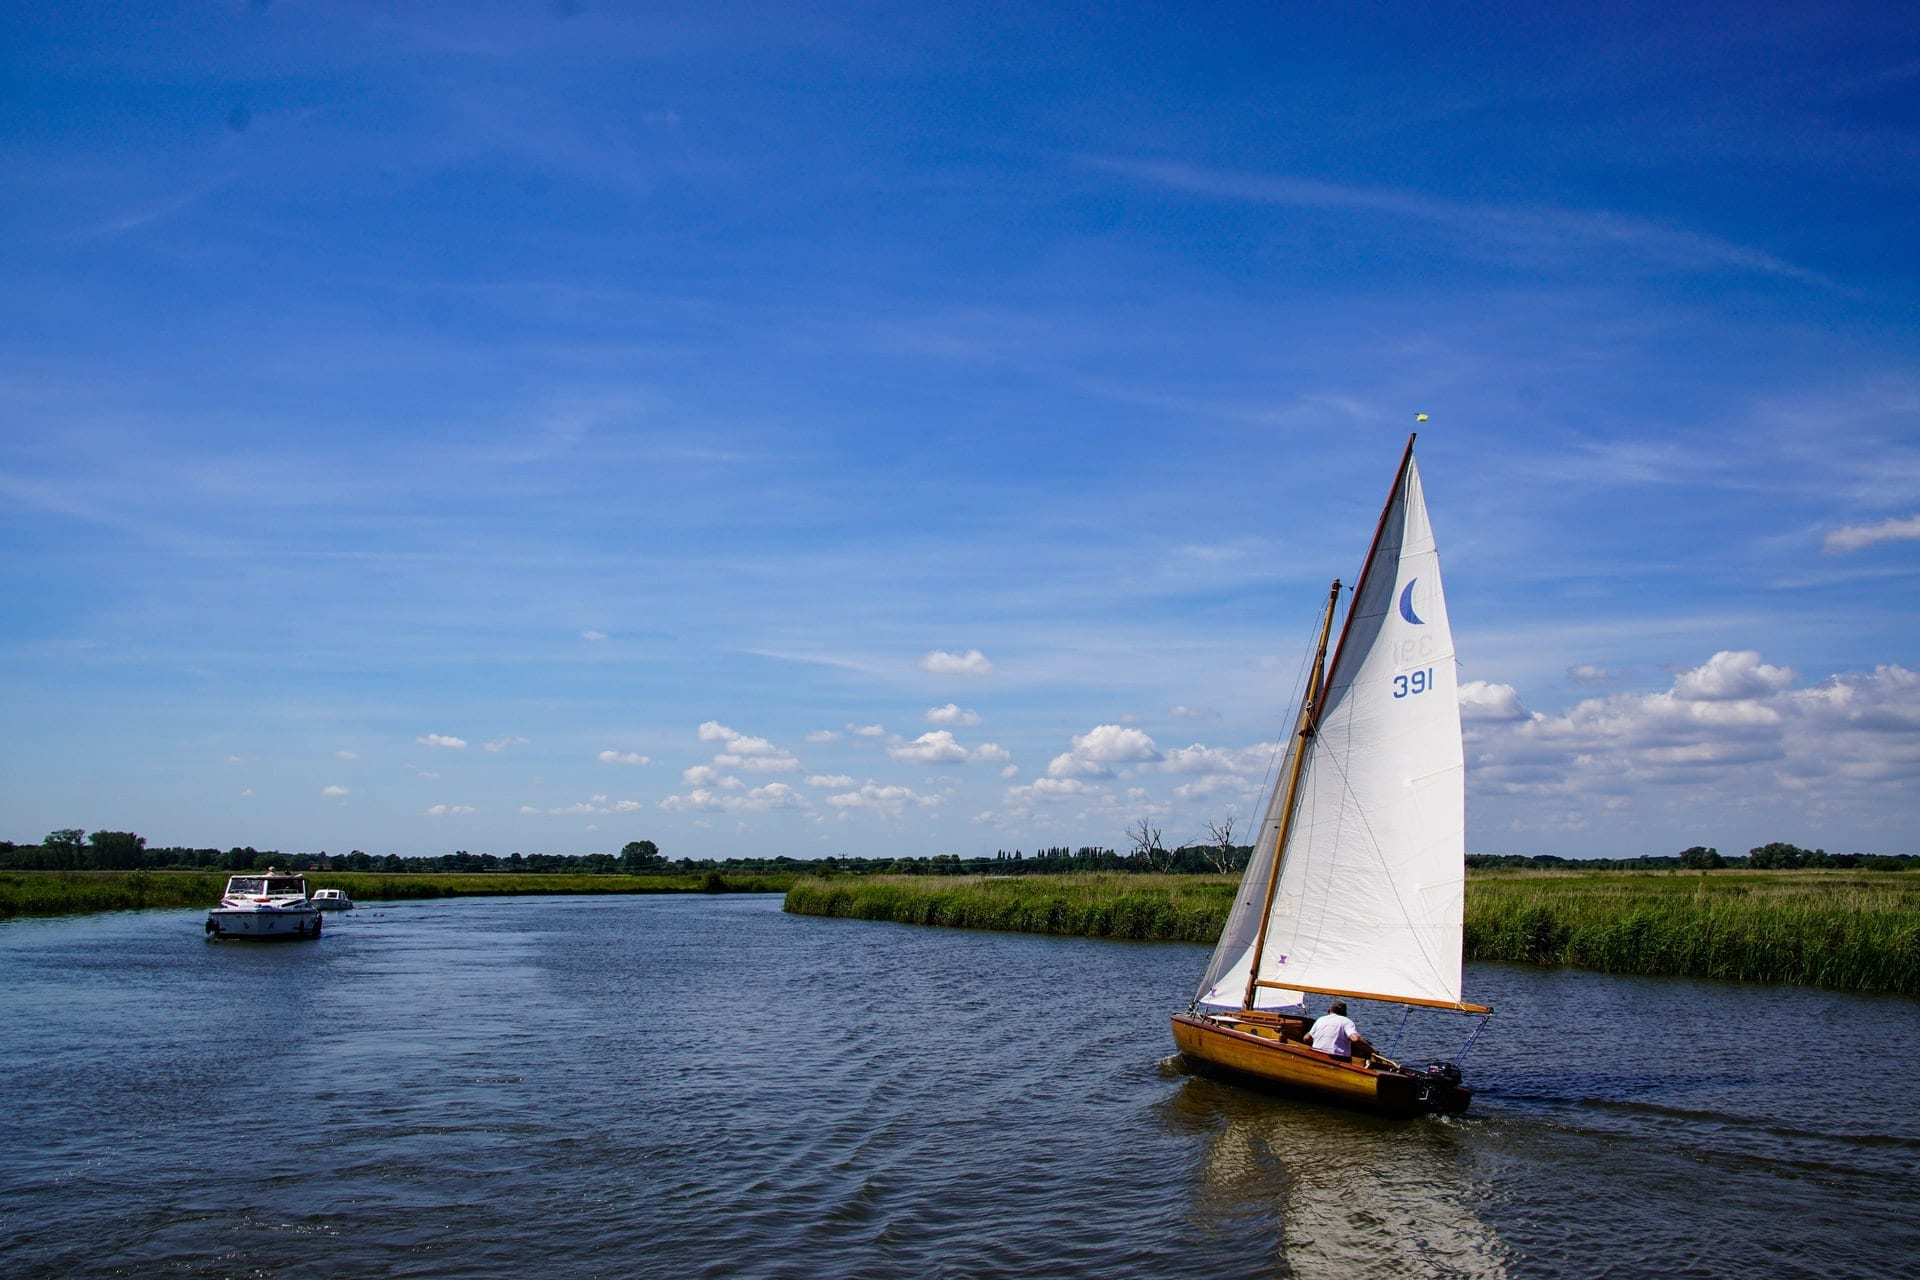 man-in-boat-on-sunny-summer-day-sailing-across-the-norfolk-broads-england